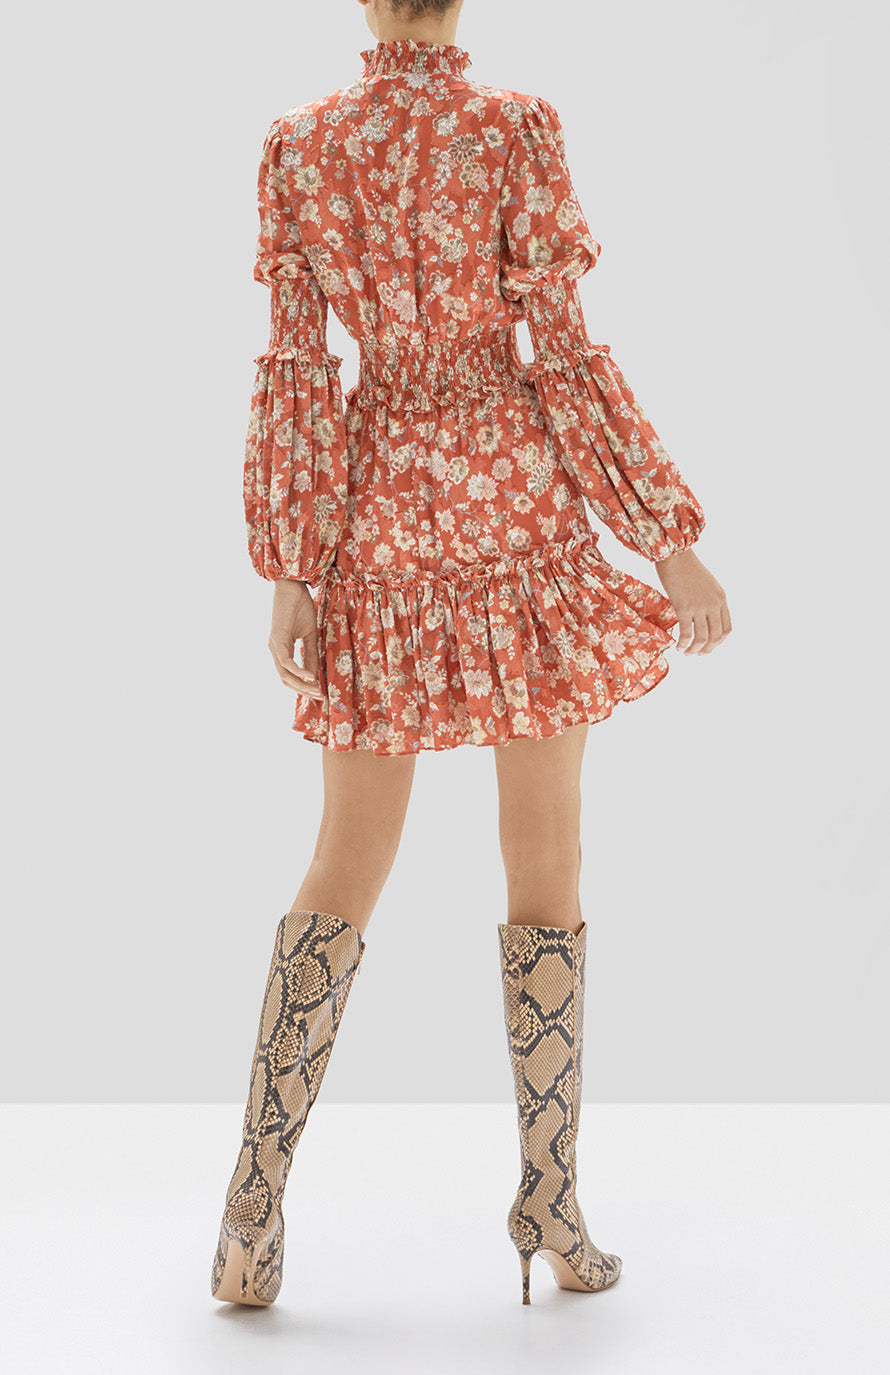 Alexis Rosewell Dress in Saffron Floral from Pre Spring 2020 Collection - Rear View